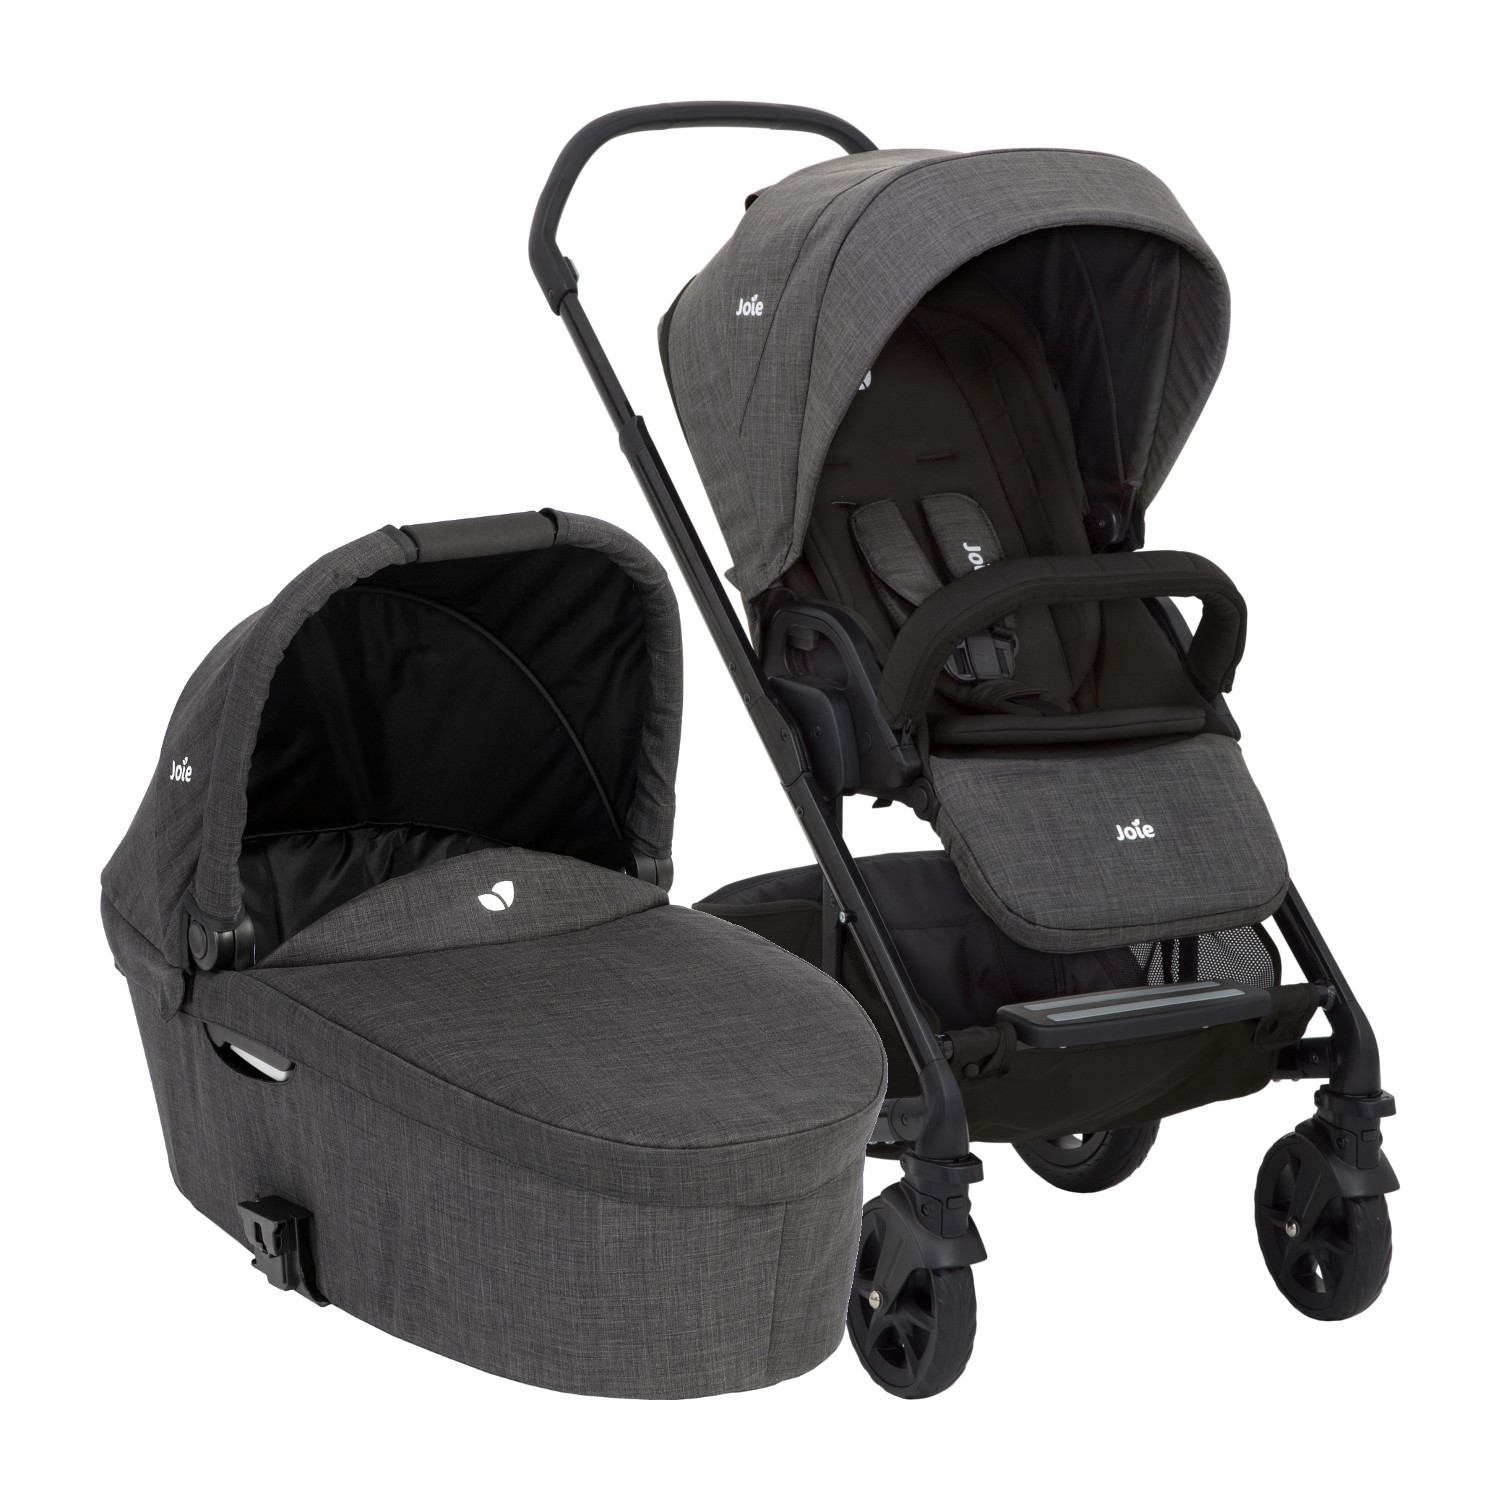 Kinderwagen Joie Joie Chrome Dlx Kinderwagen Pack Pavement